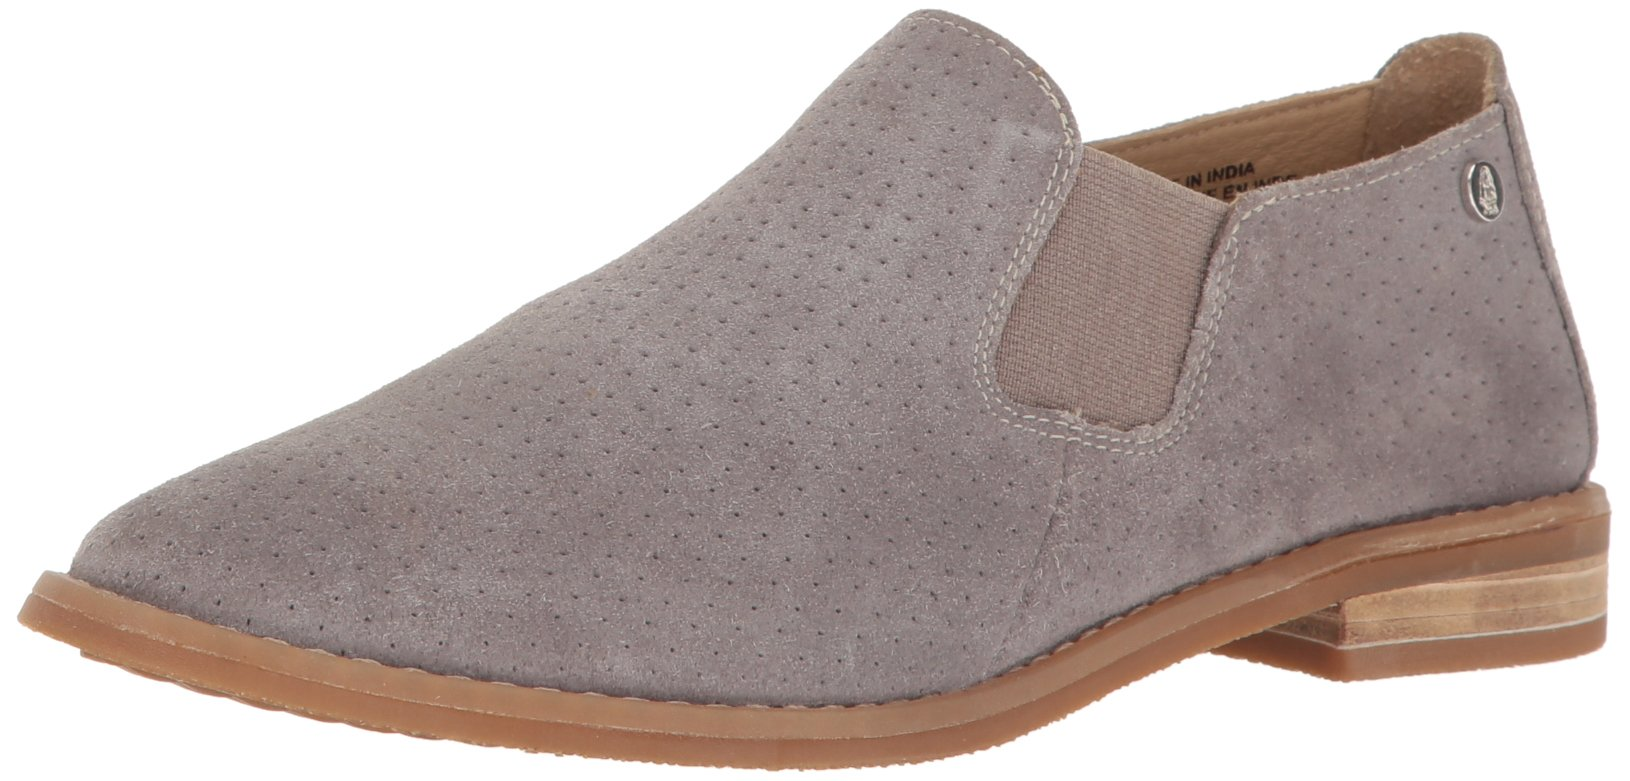 Hush Puppies Women's Analise Clever Flat, Frost Gray Suede Perforated, 9.5 W US